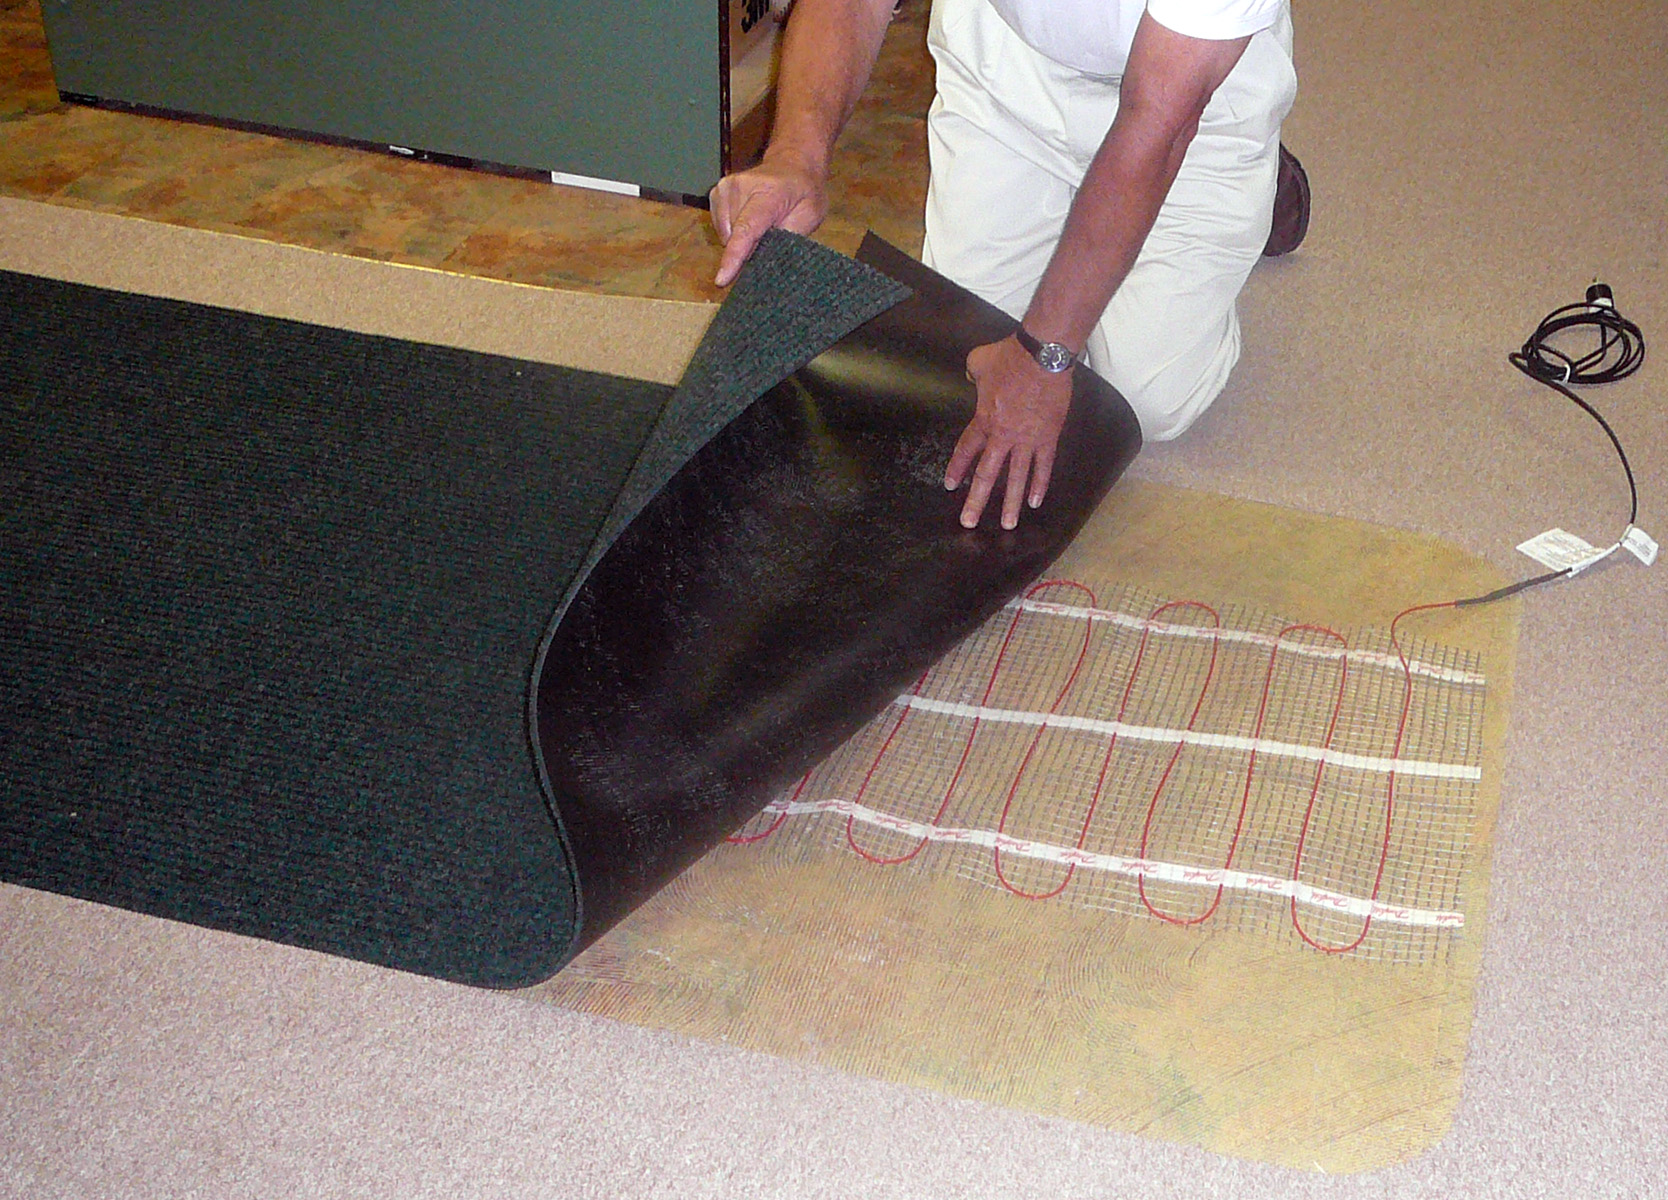 New Under Carpet Or Rug Heated Floor Systems Warm And Dry